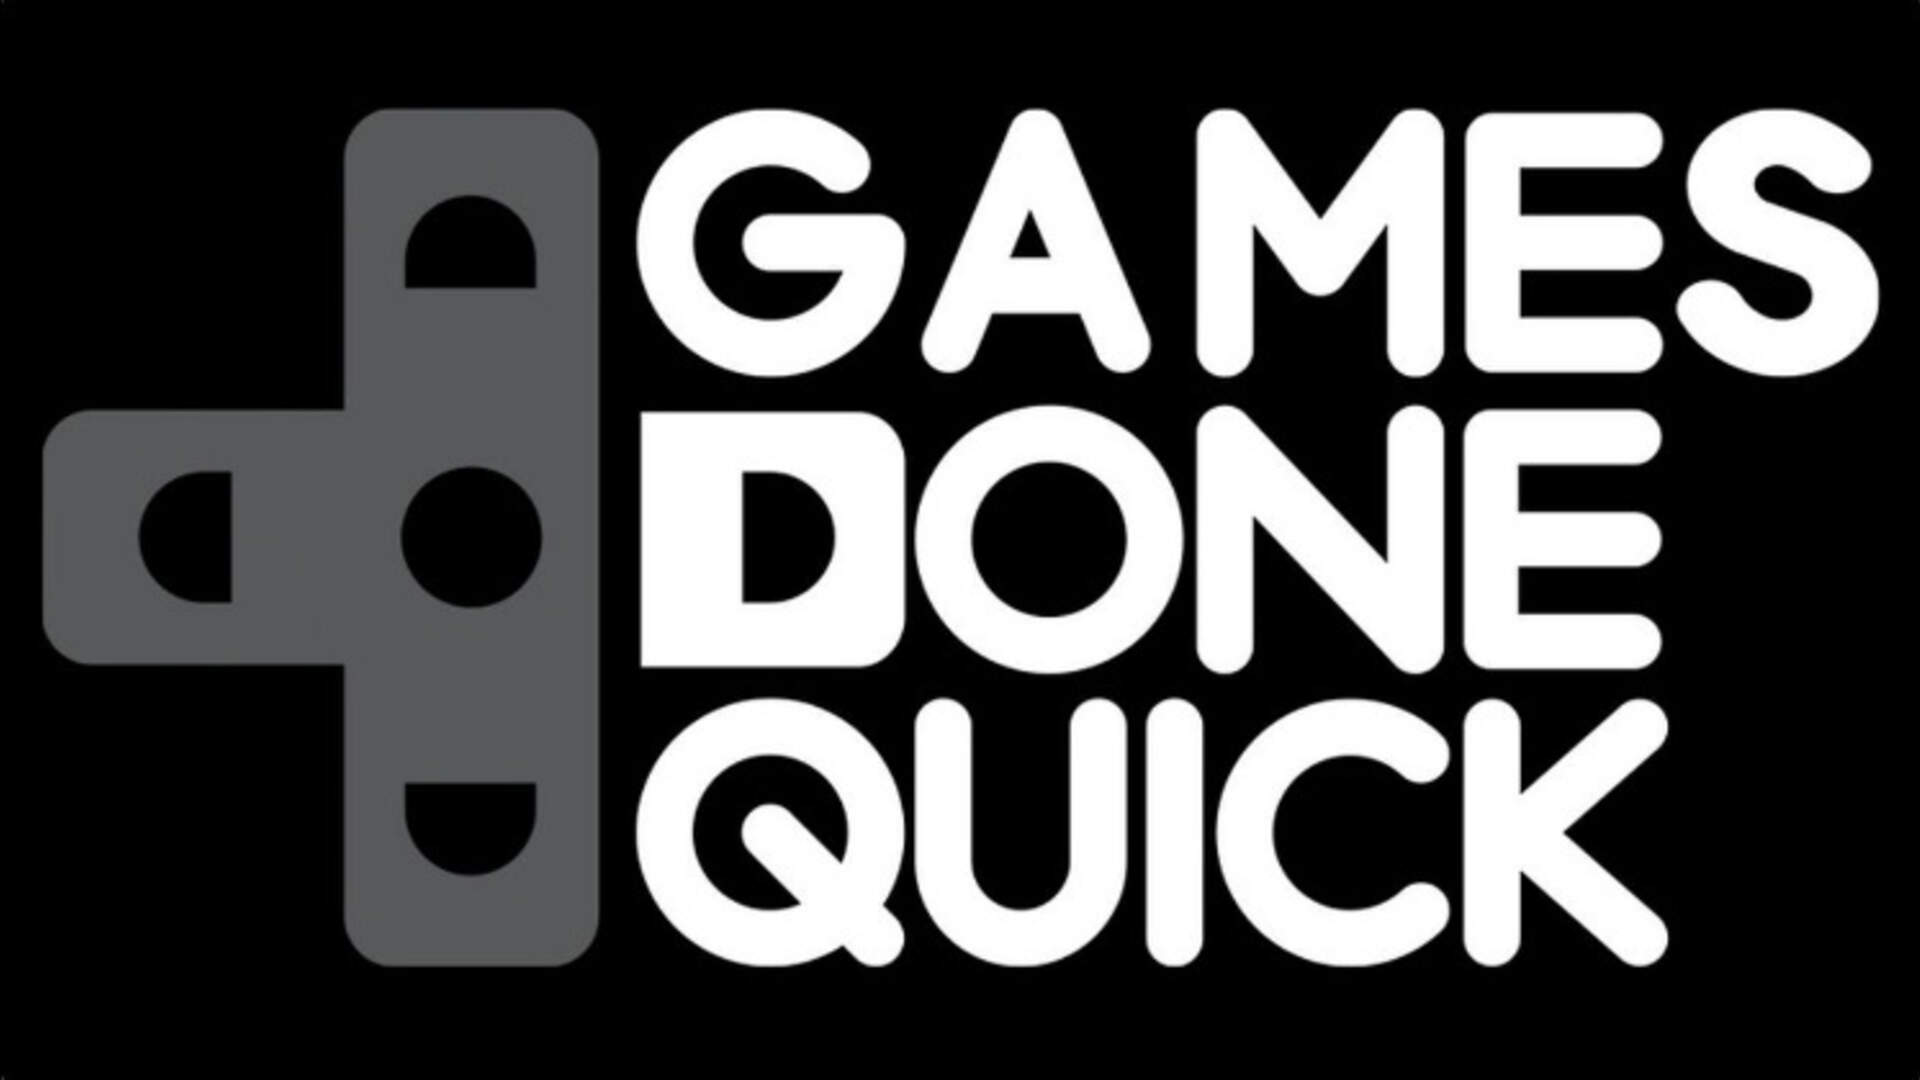 Awesome Games Done Quick 2016 Gives Us a Rare Look at the Inner Workings of Video Games